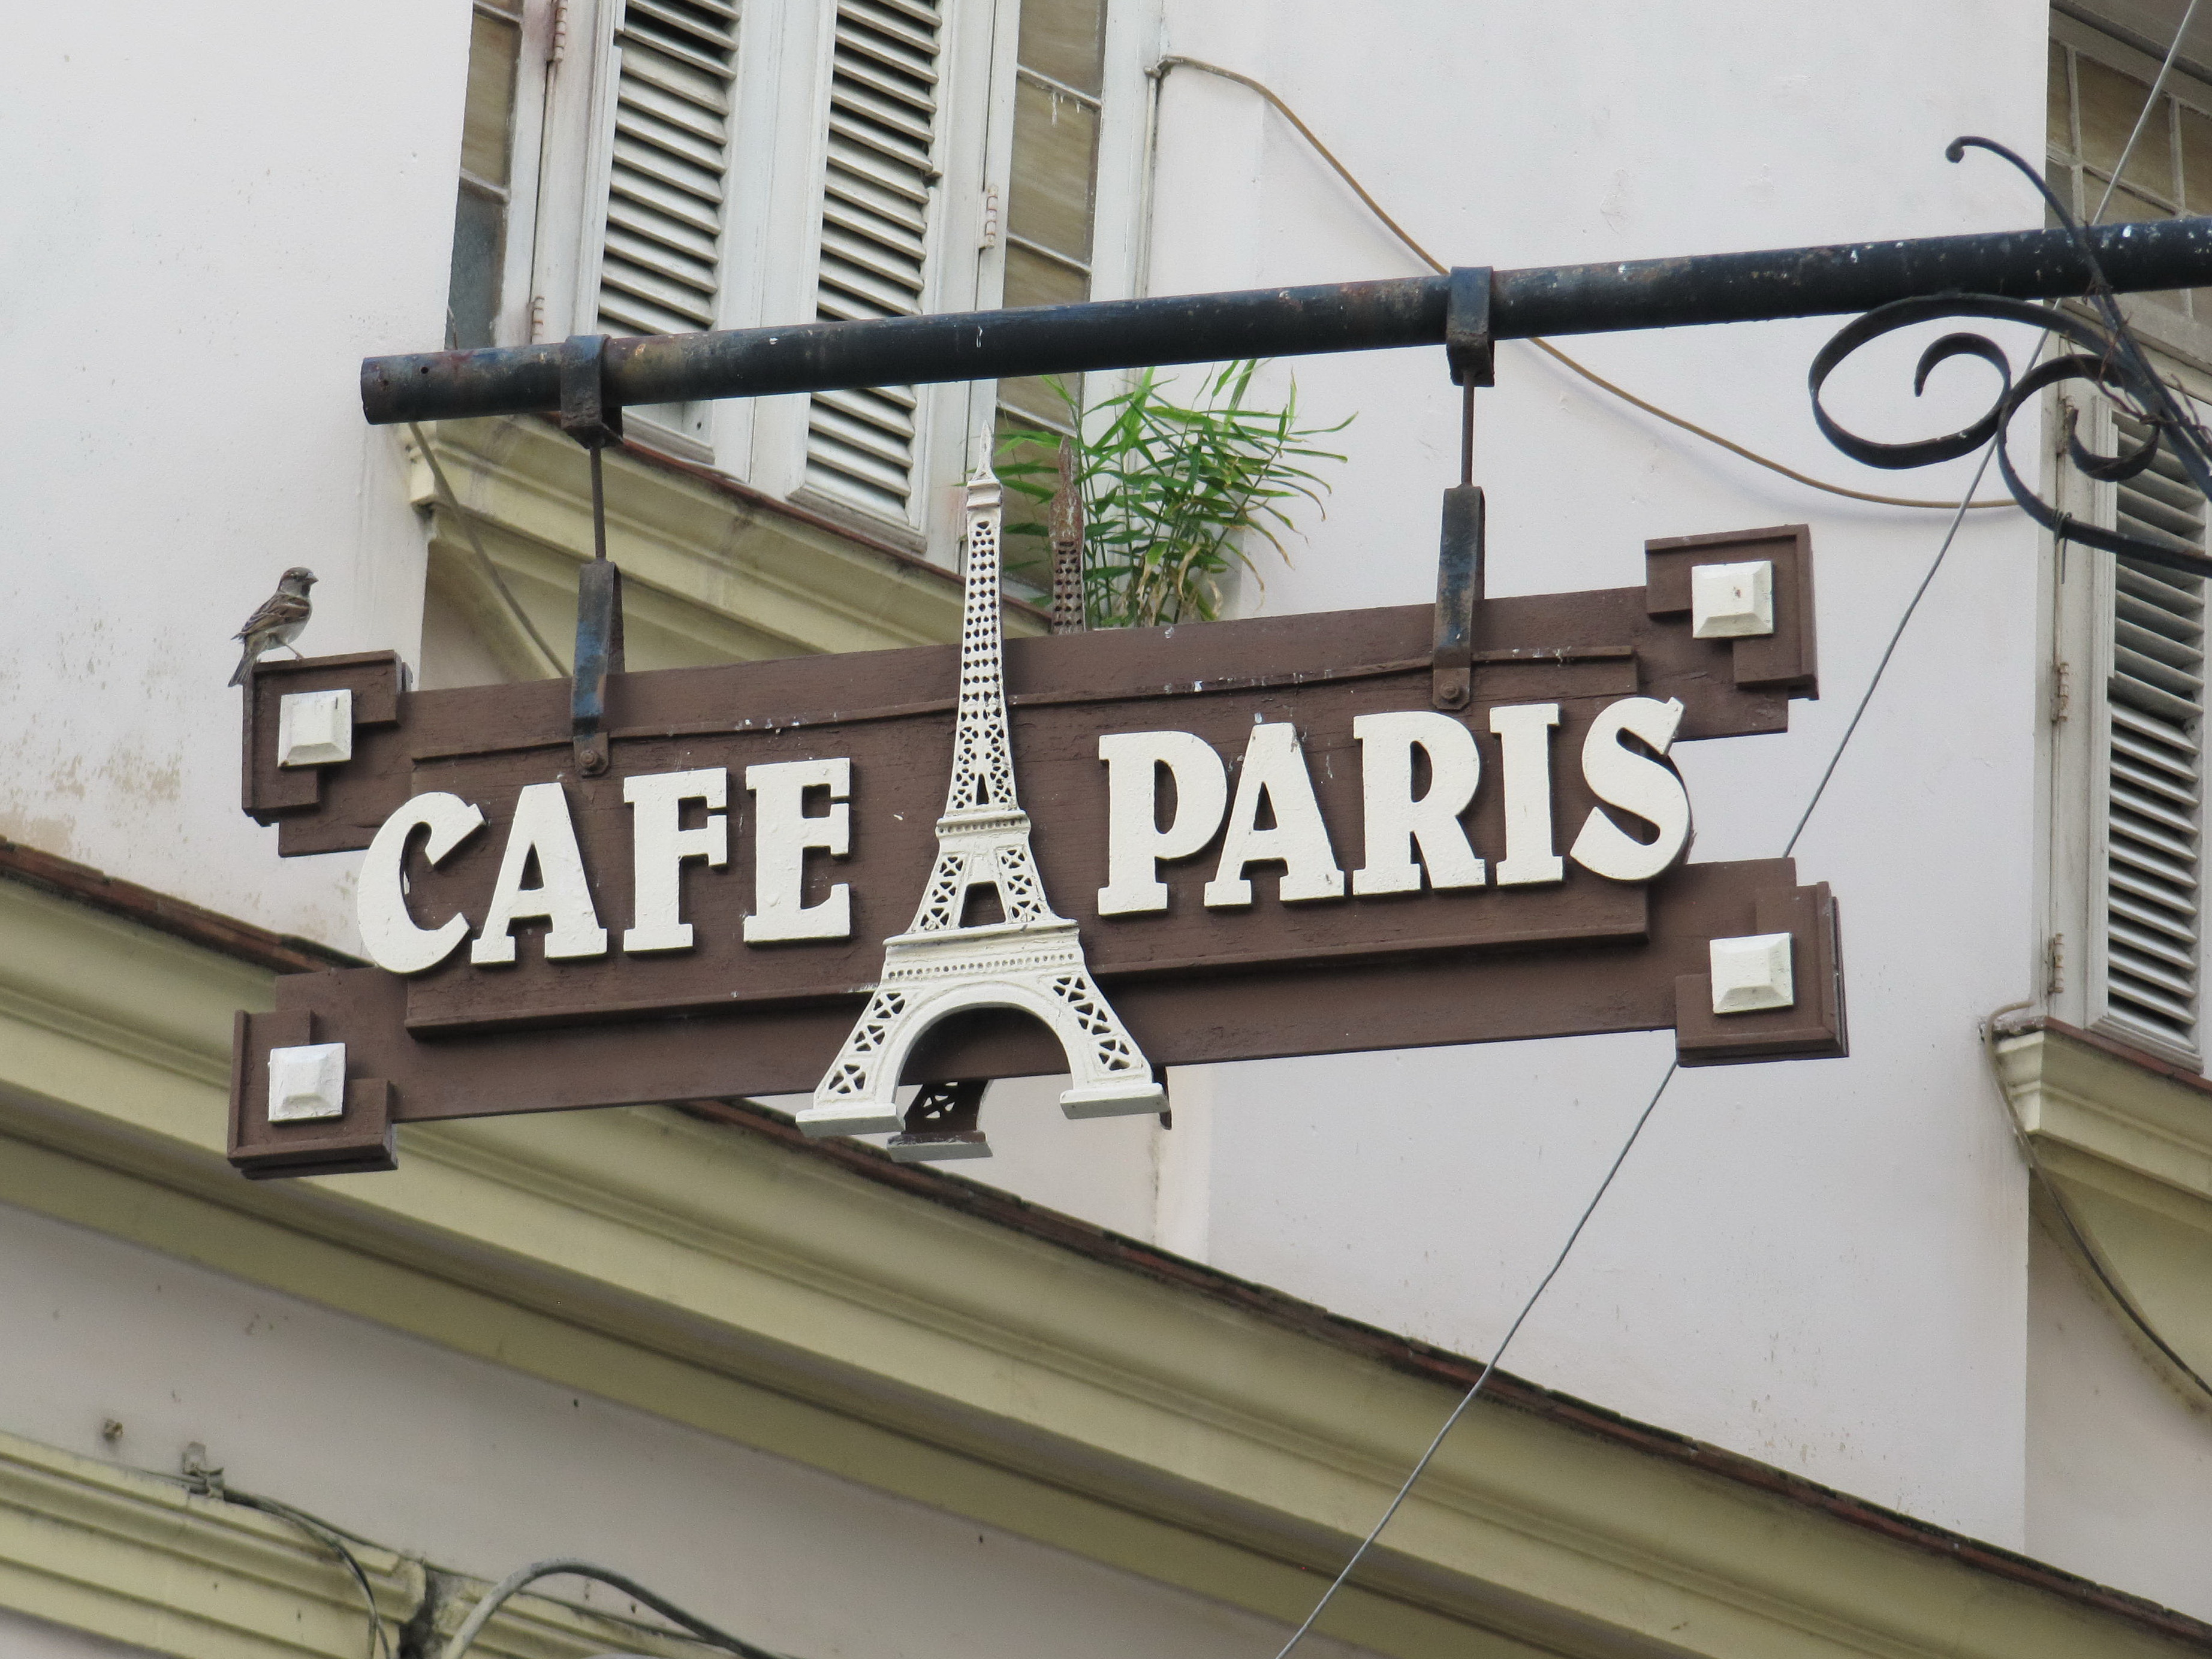 Cafe paris 3